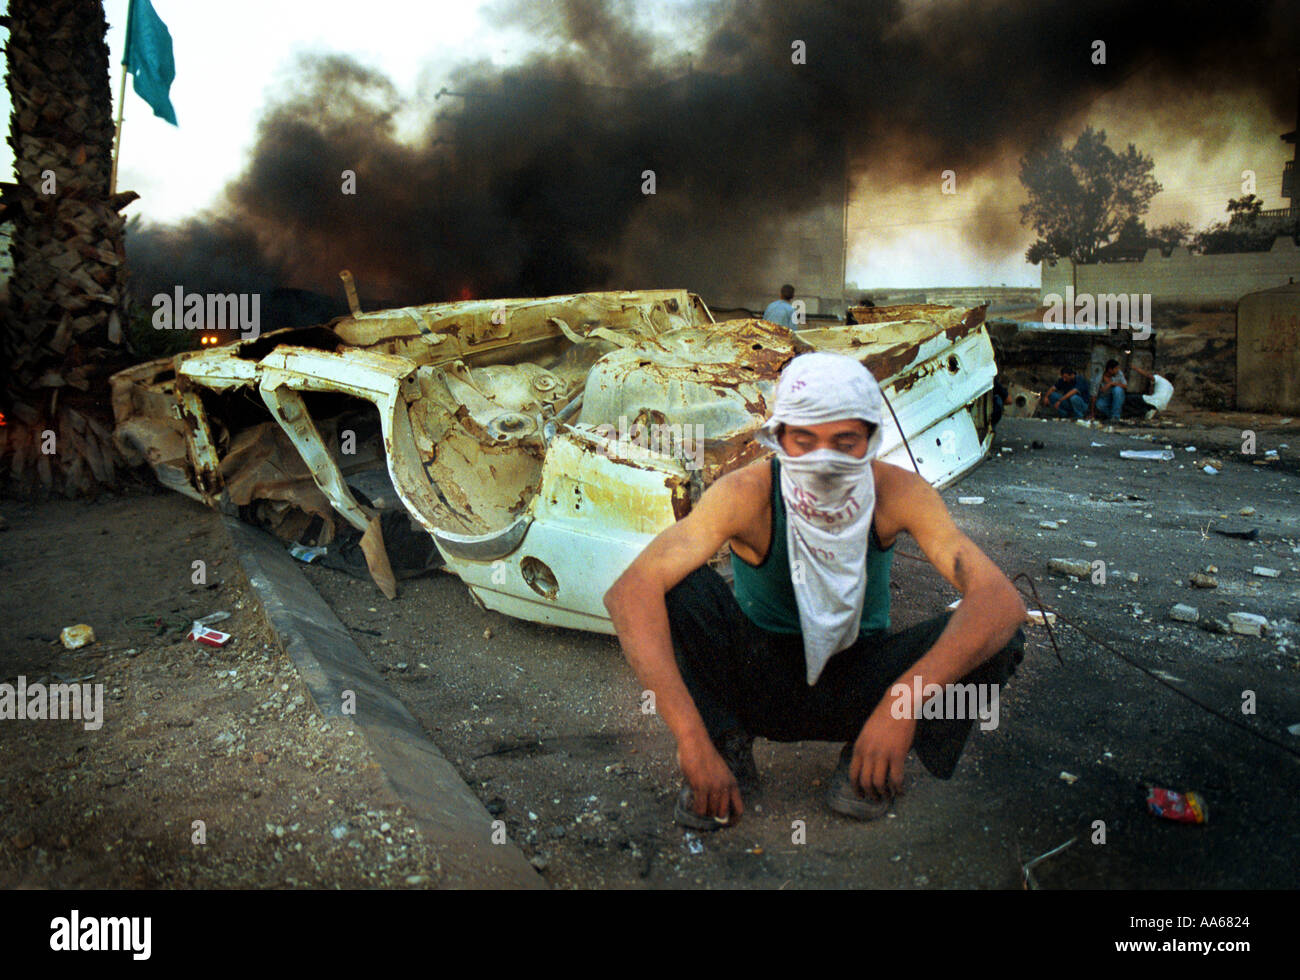 A Palestinian hides behind a burning car and tire and tries to catch his breath after Israeli soldiers fired tear - Stock Image